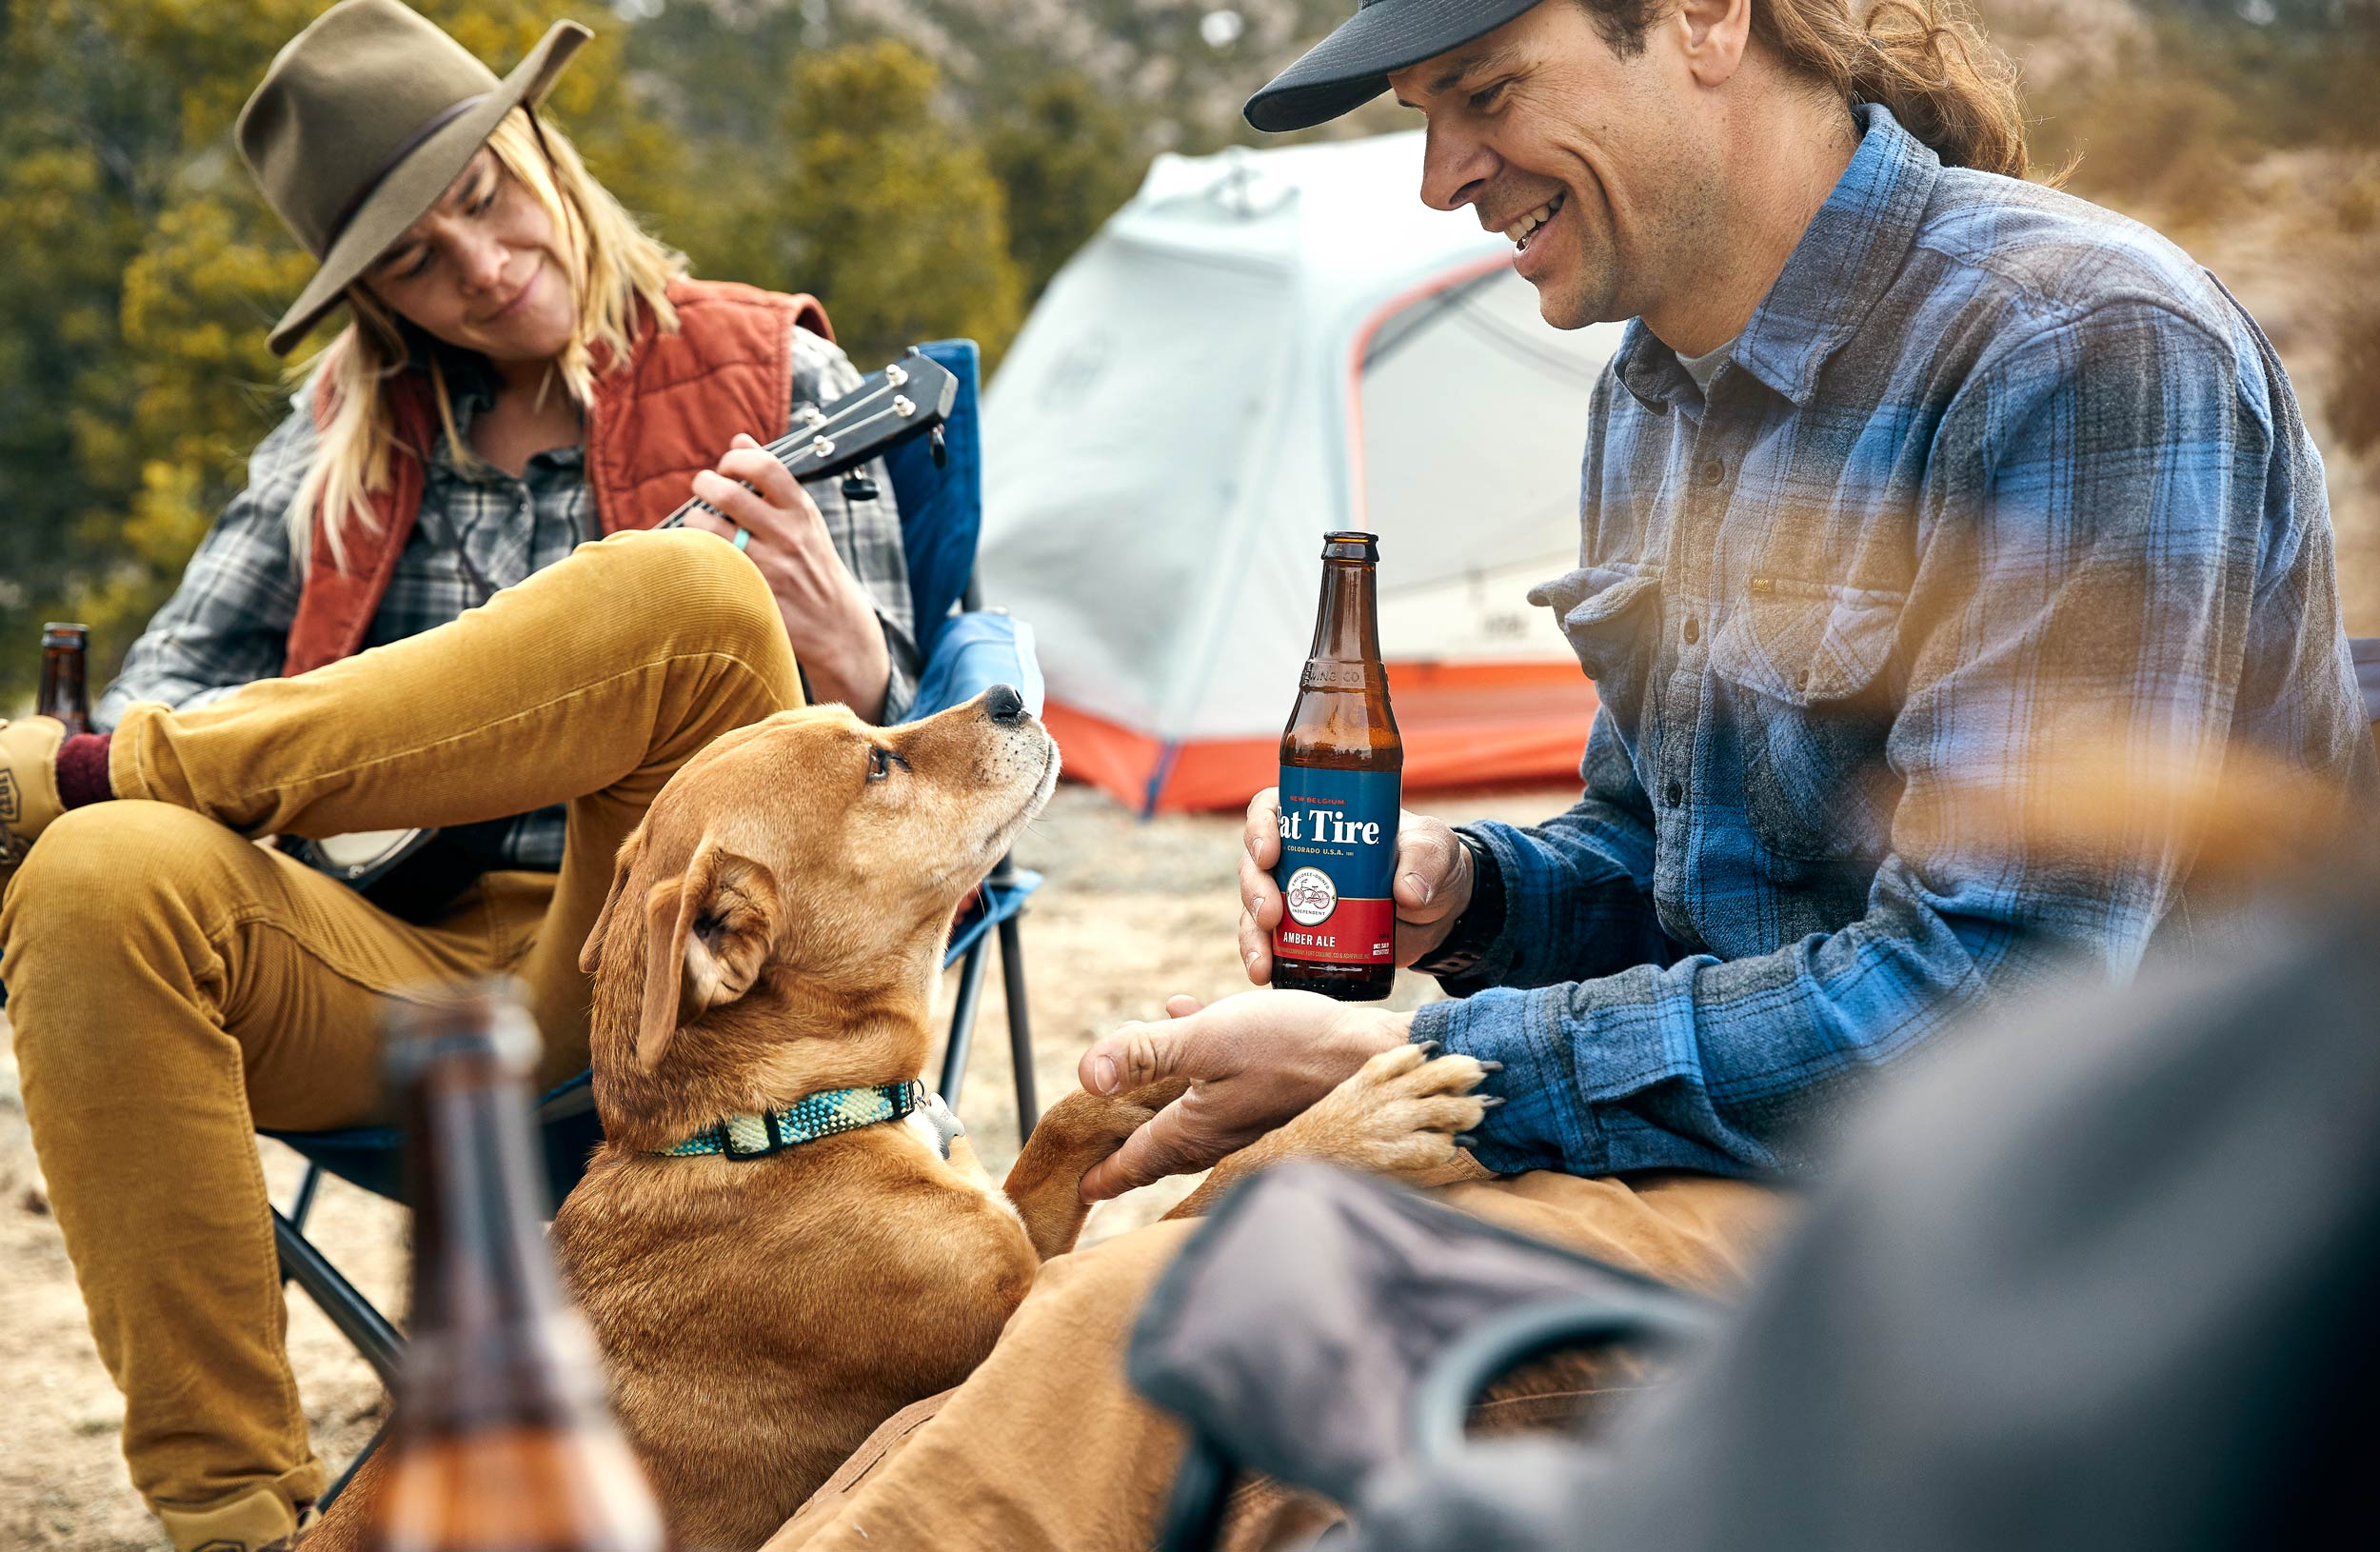 Andrew Maguire photographs campers for a Fat Tire campaign in Colorado for New Belgium Brewing.